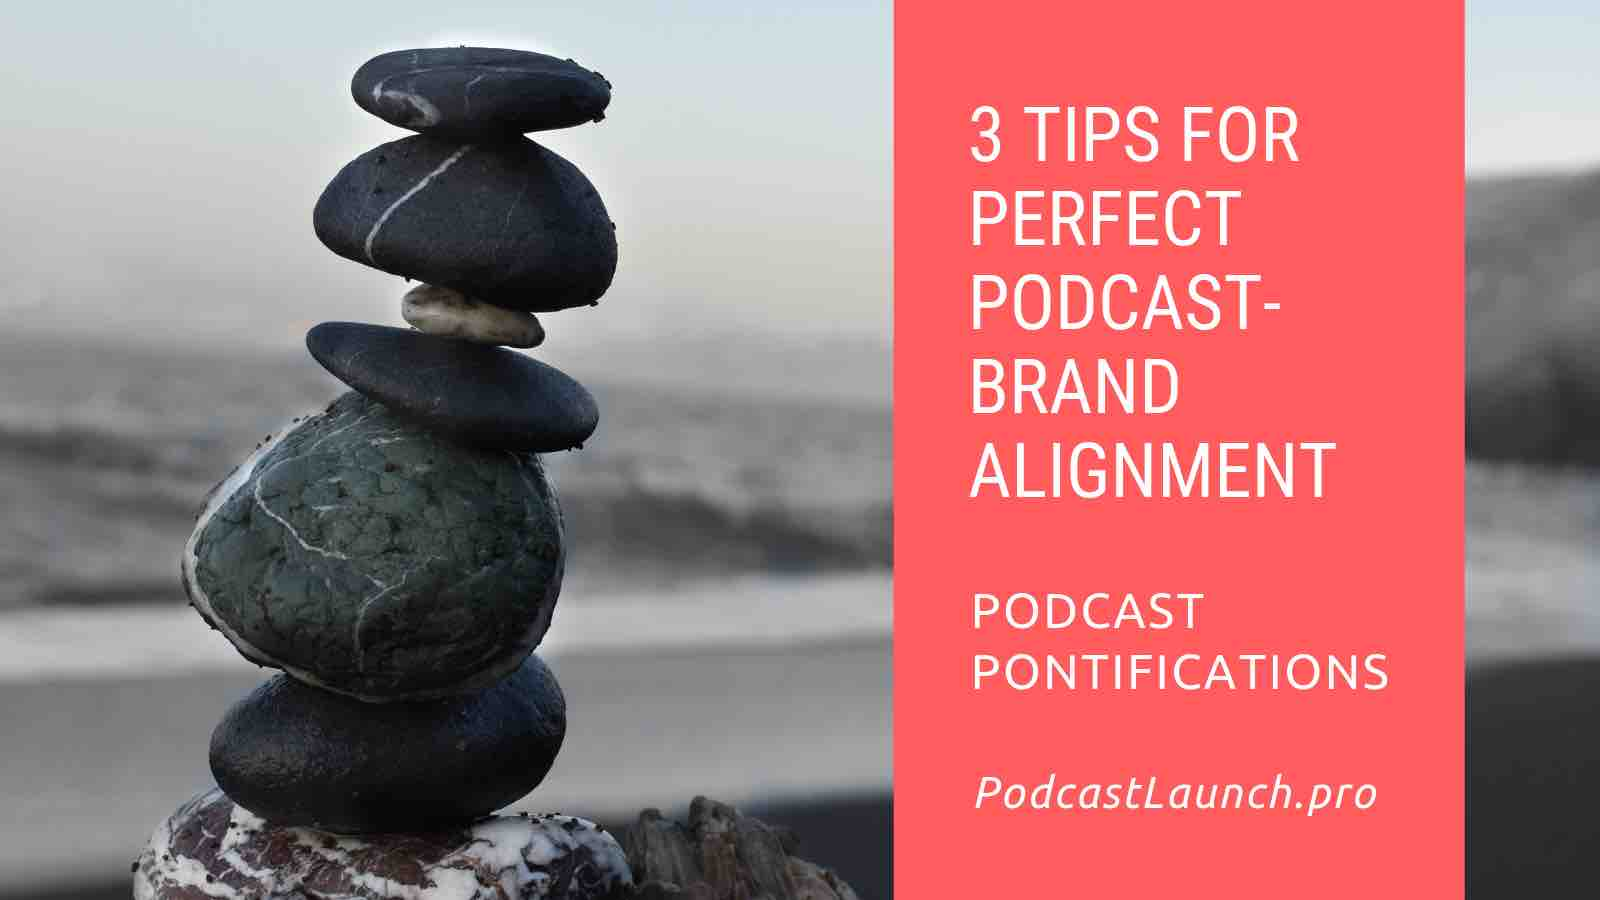 3 Tips To Perfect Alignment Between Your Podcast And Your Business' Brand